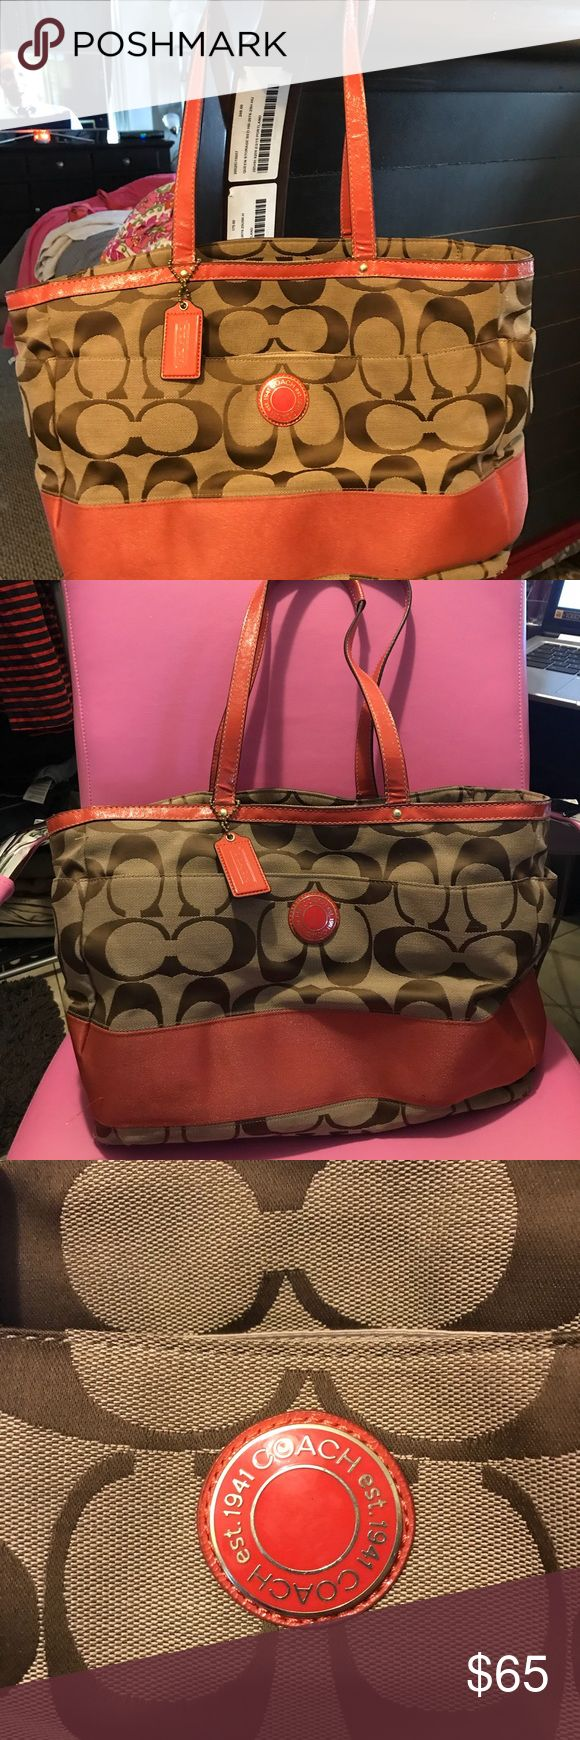 Coach diaper bag with crossbody attachment In used condition, used it as a diaper bag and LOVED IT wear in the inside could use a good wash down but was very well loved! Coach Bags Baby Bags